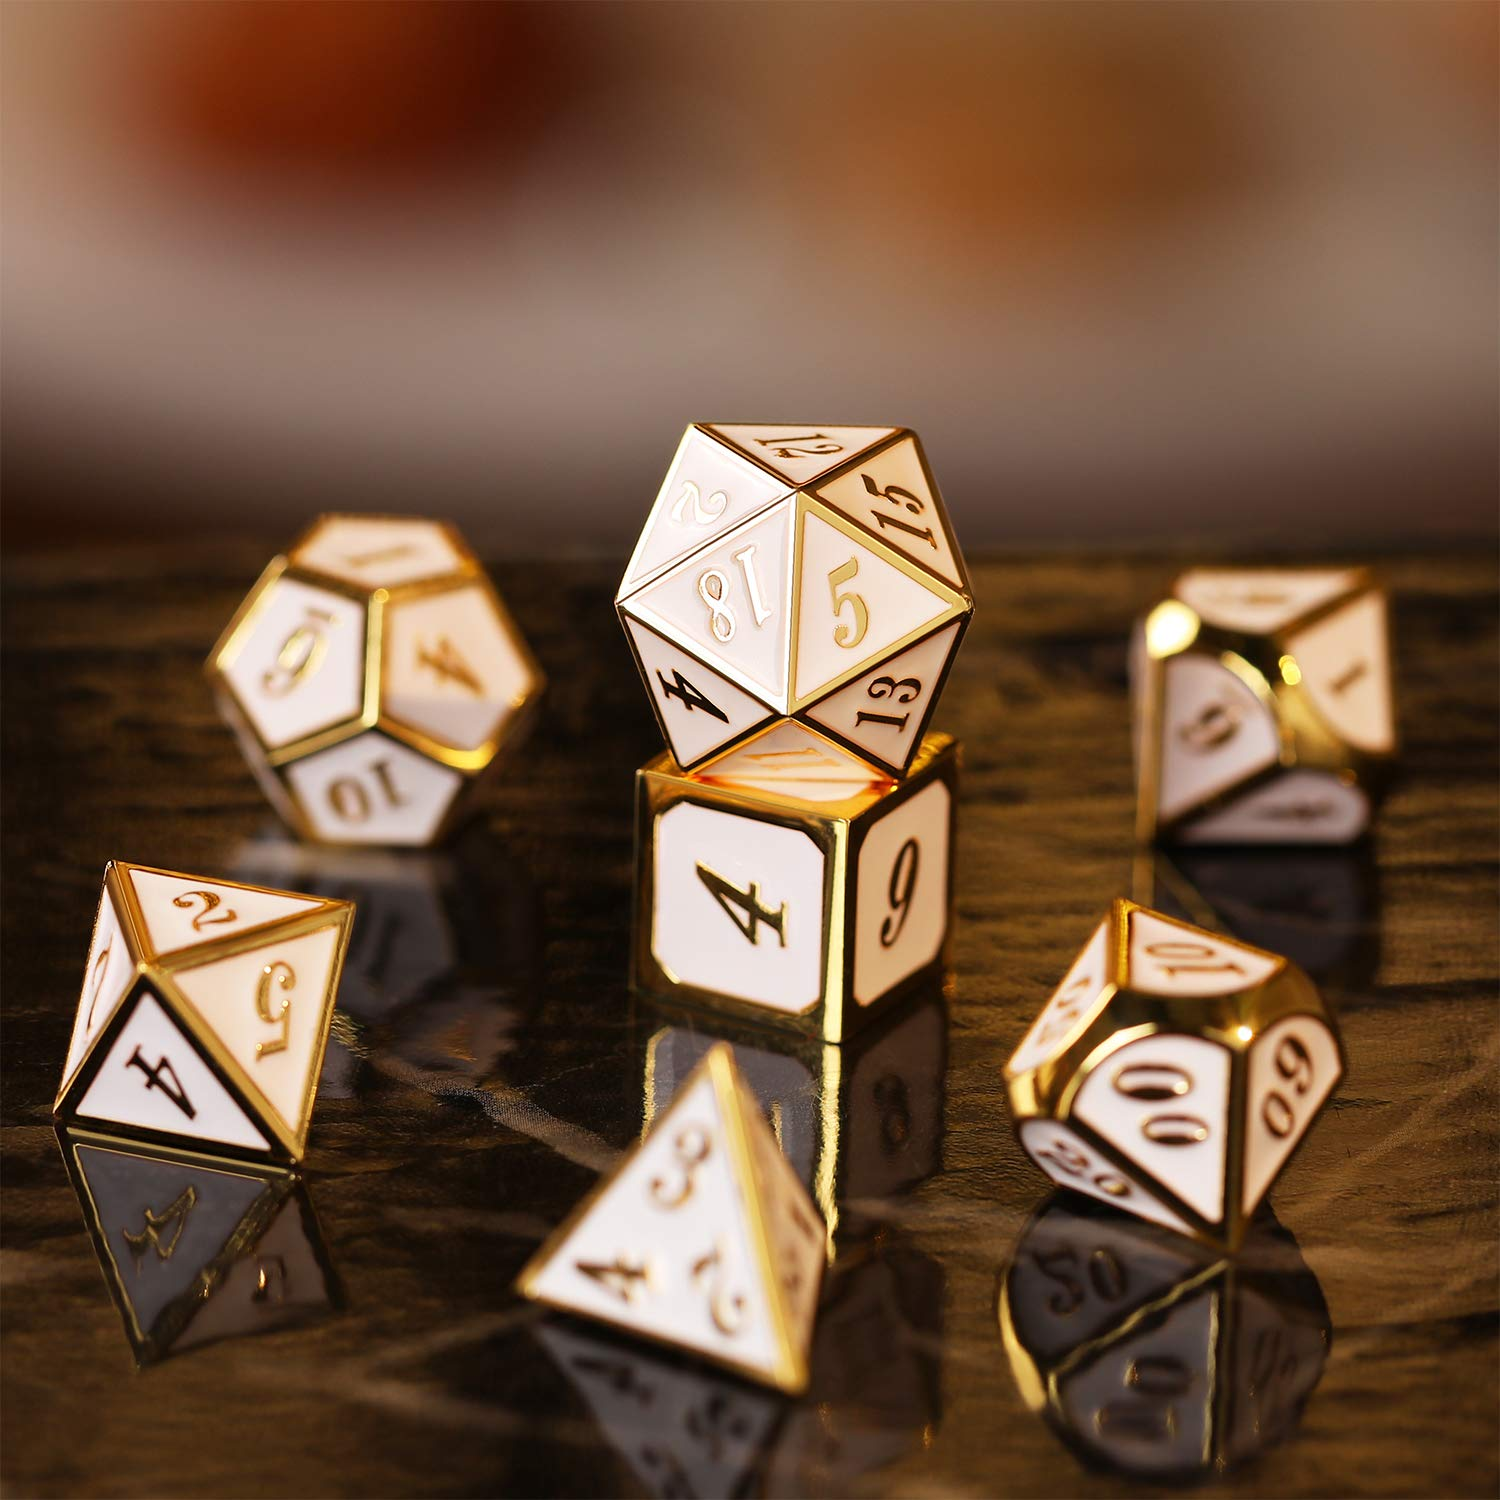 TecUnite 7 Die Metal Polyhedral Dice Set DND Role Playing Game Dice Set with Storage Bag for RPG Dungeons and Dragons D/&D Math Teaching